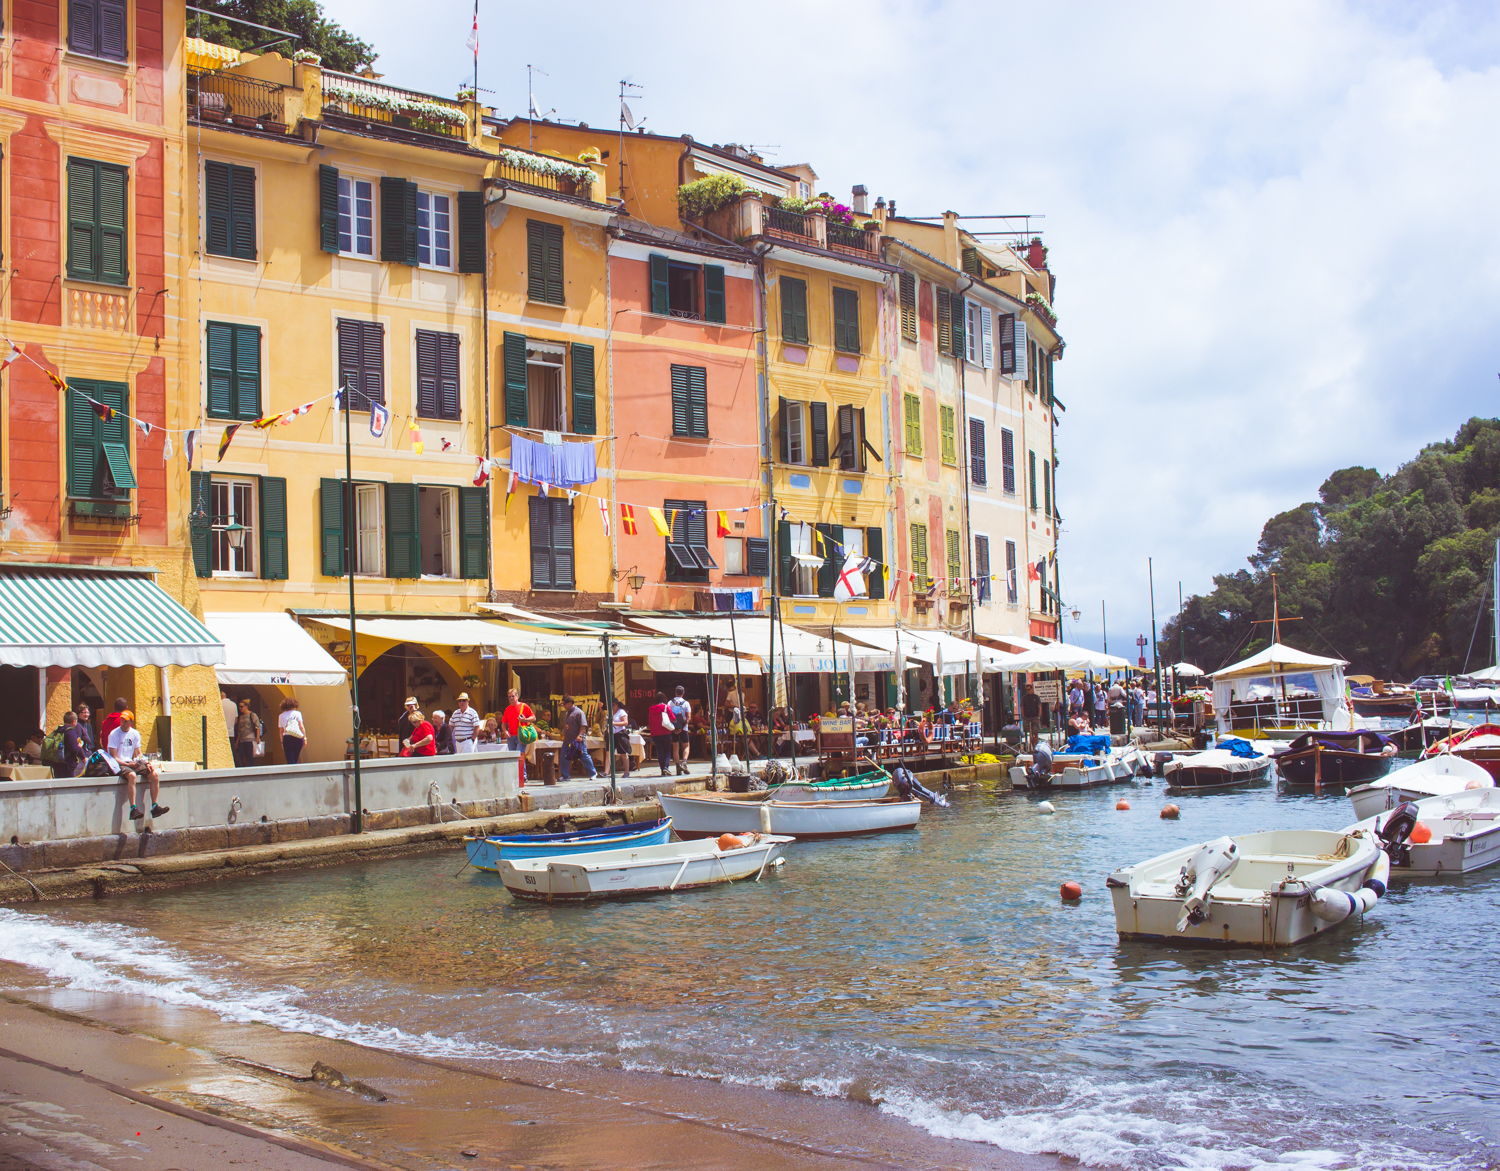 livvyland-blog-olivia-watson-austin-texas-fashion-travel-blogger-princess-royal-mediterranean-cruise-portofino-cinque-terre-italy-what-to-do-see-eat-16